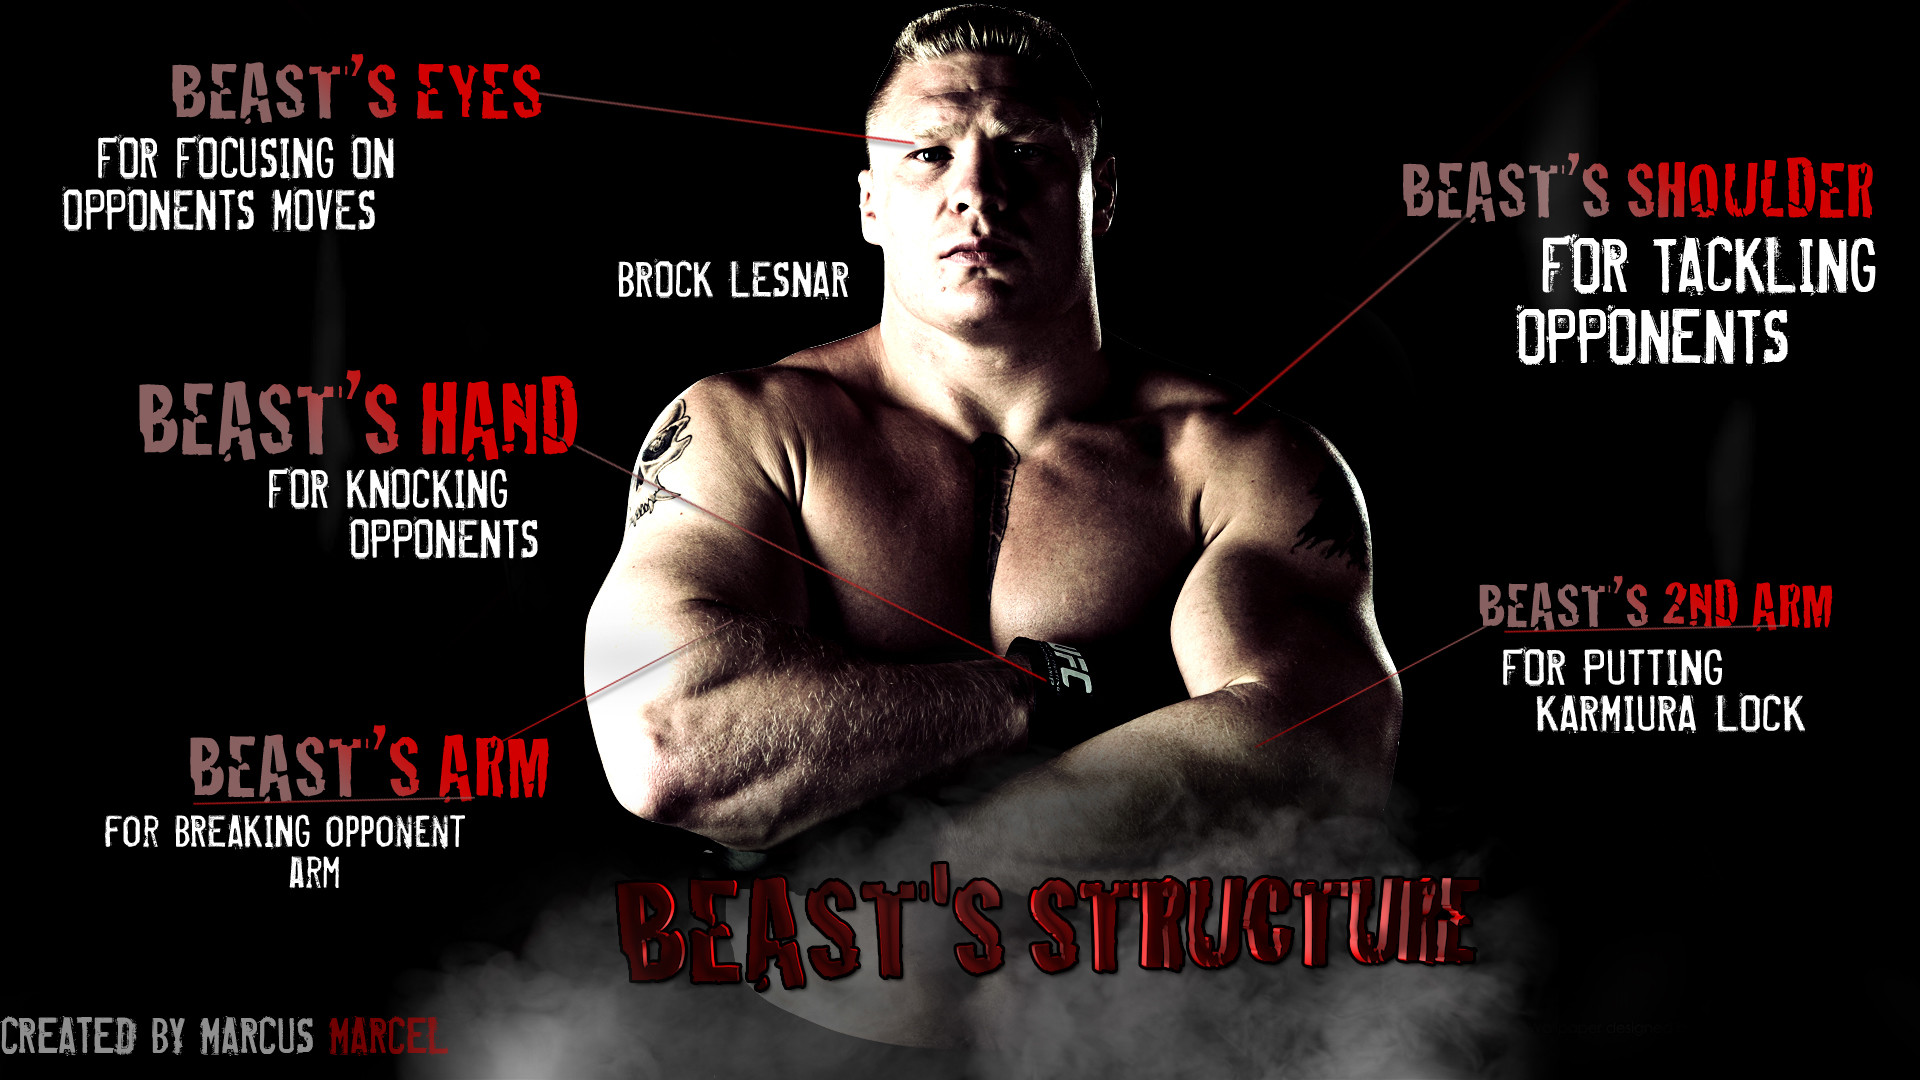 … Brock Lesnar – The Beast Structure by MarcusMarcel